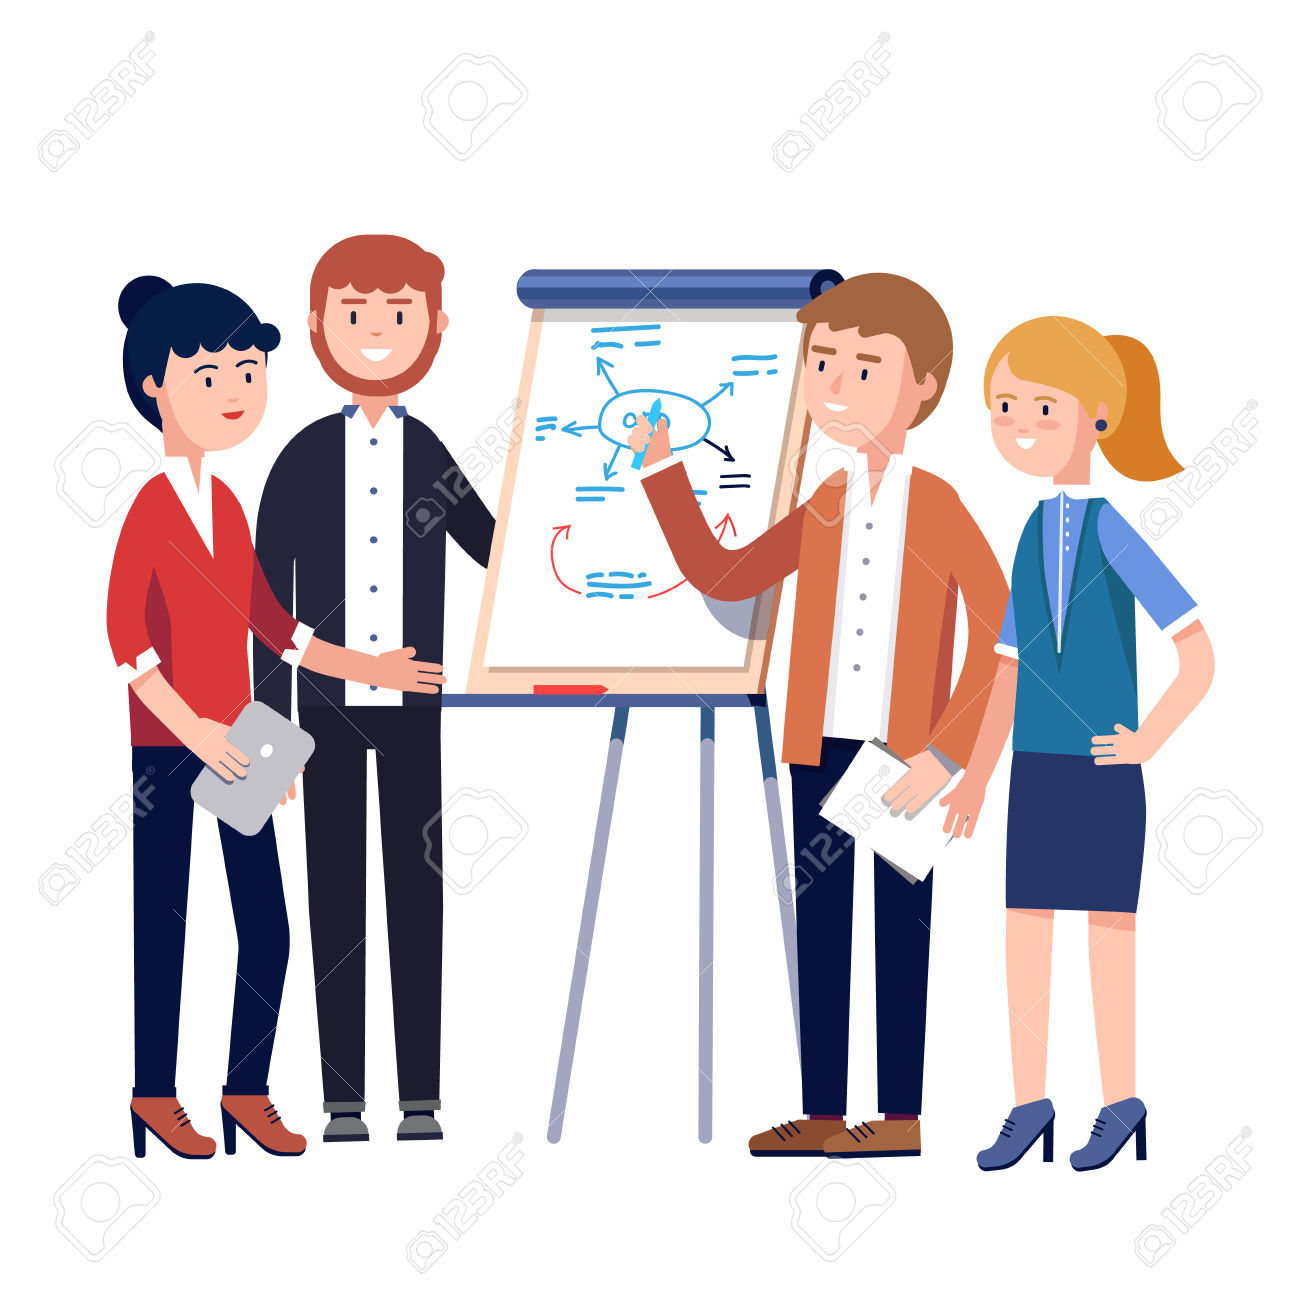 Meeting clipart planning meeting. Image free download best